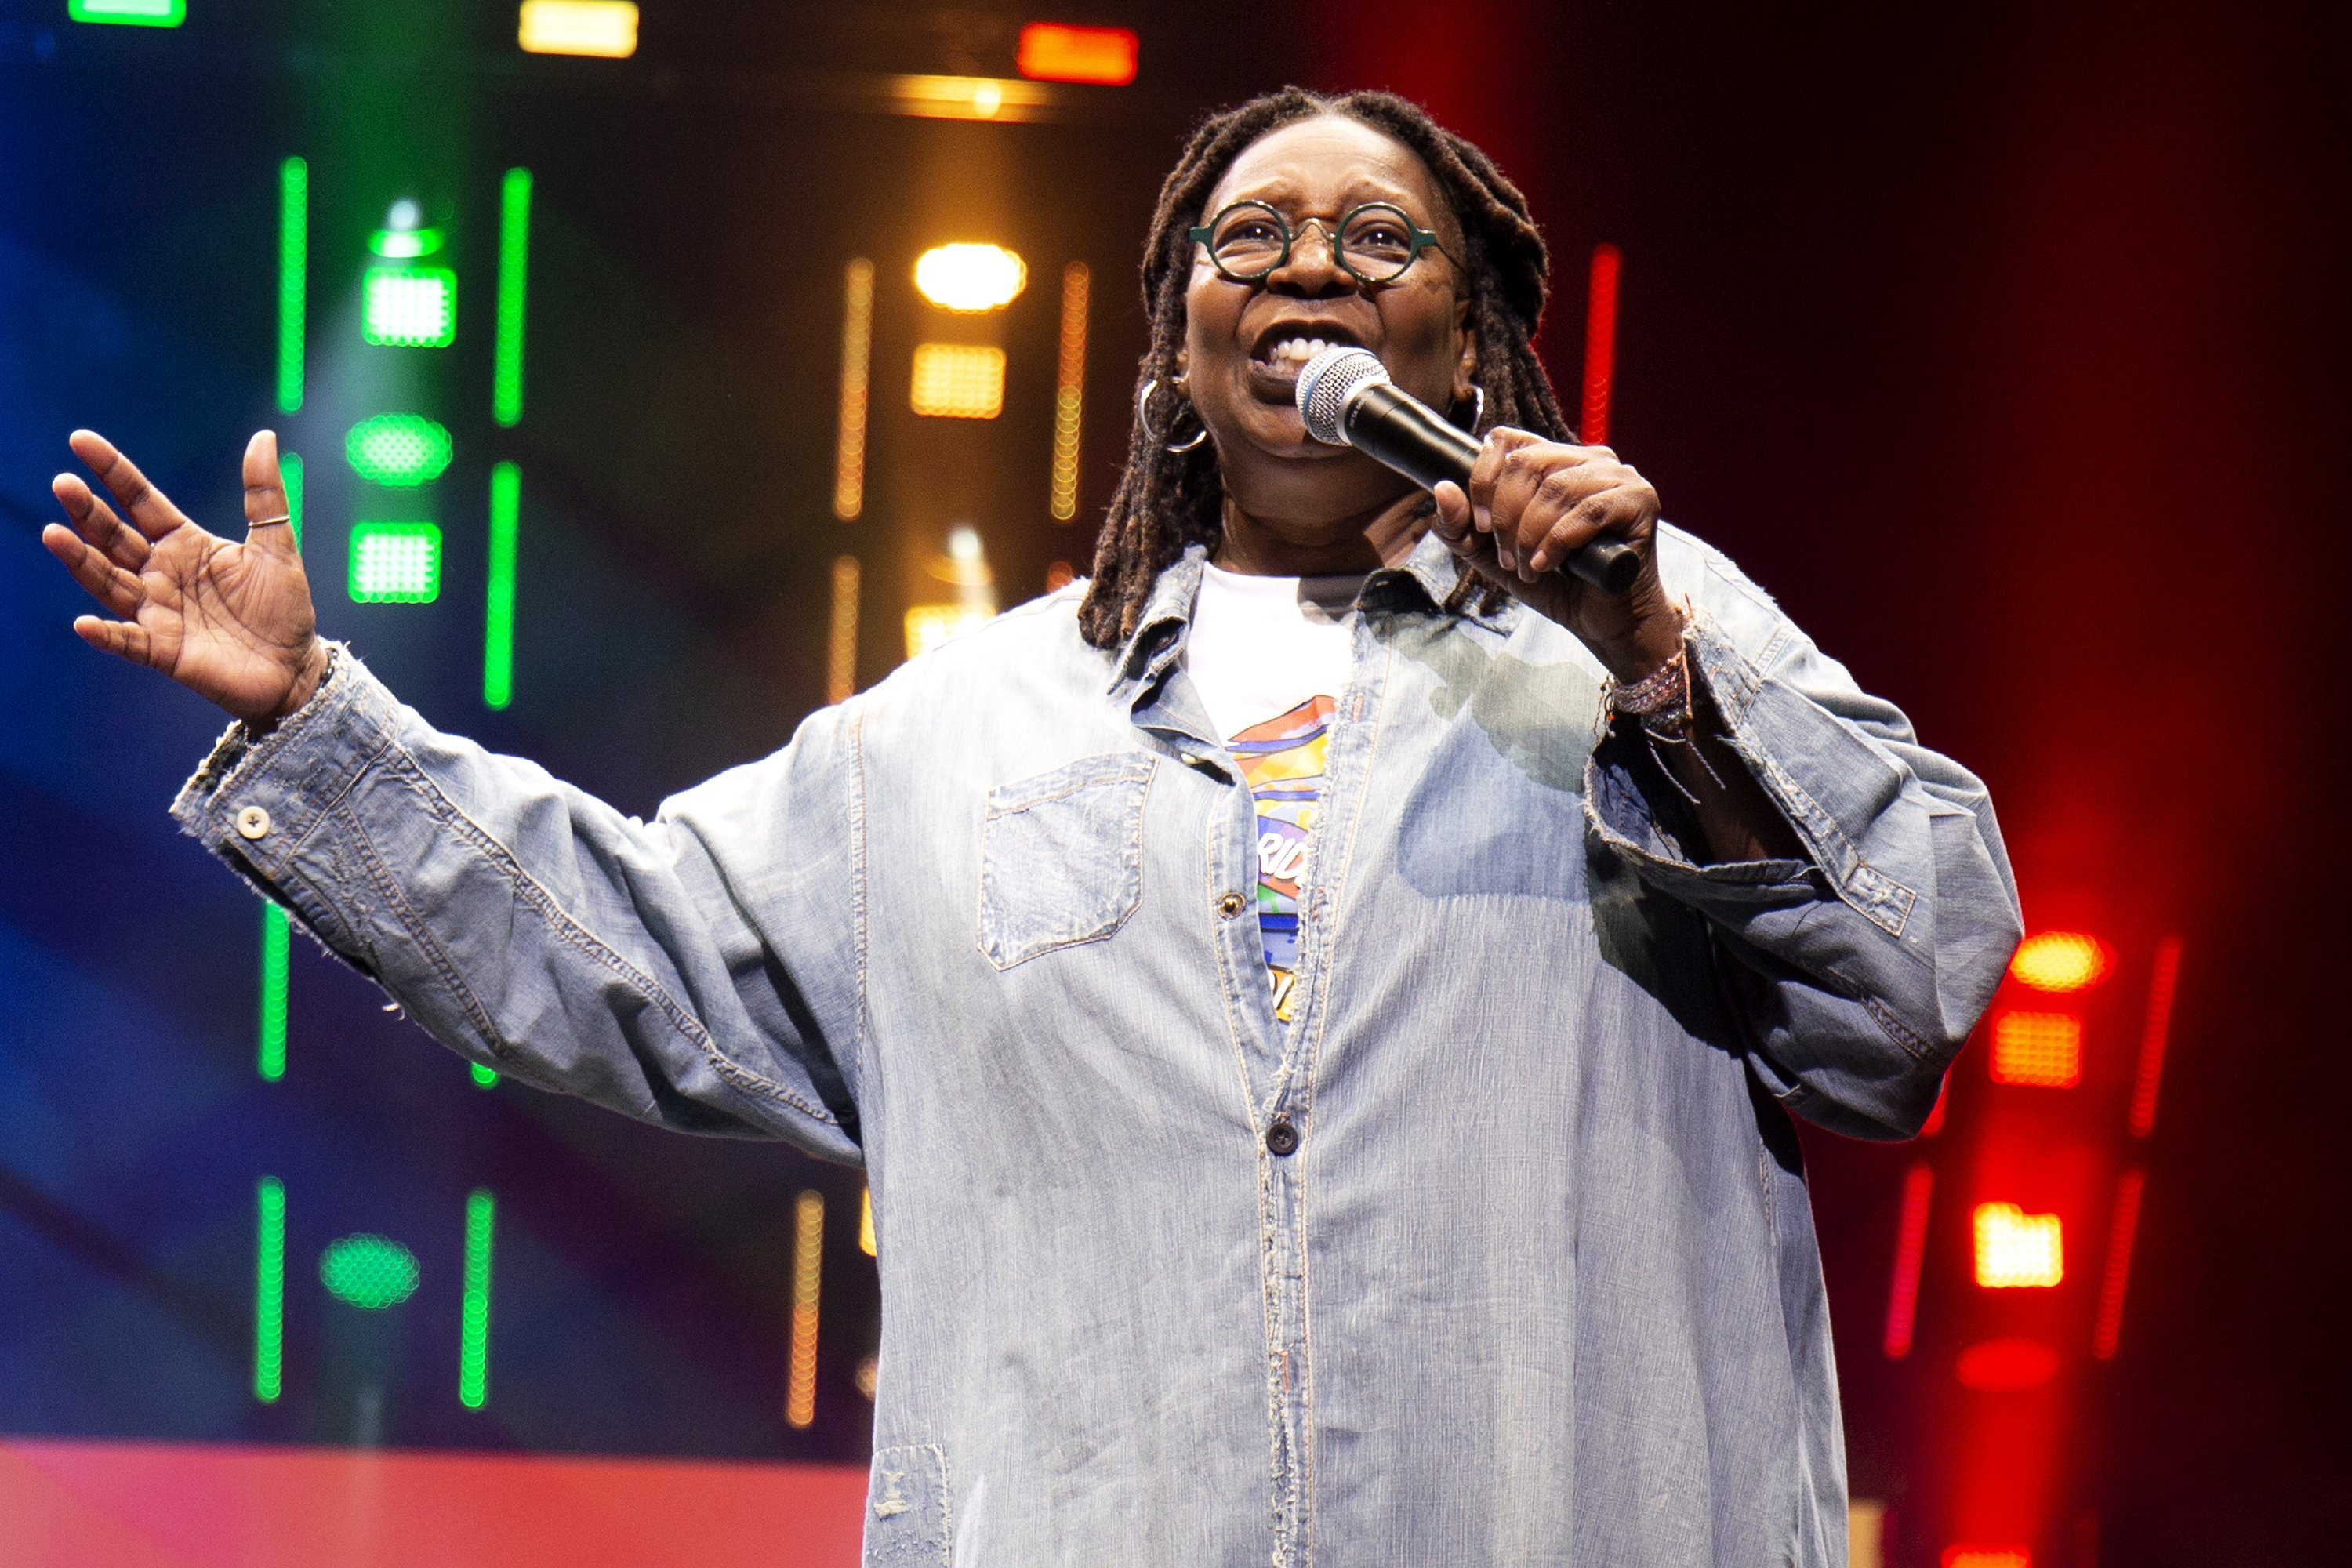 Whoopi Goldberg onstage during Opening Ceremony of 'WorldPride NYC 2019' at Barclays Center in New York City. | Source: Getty Images